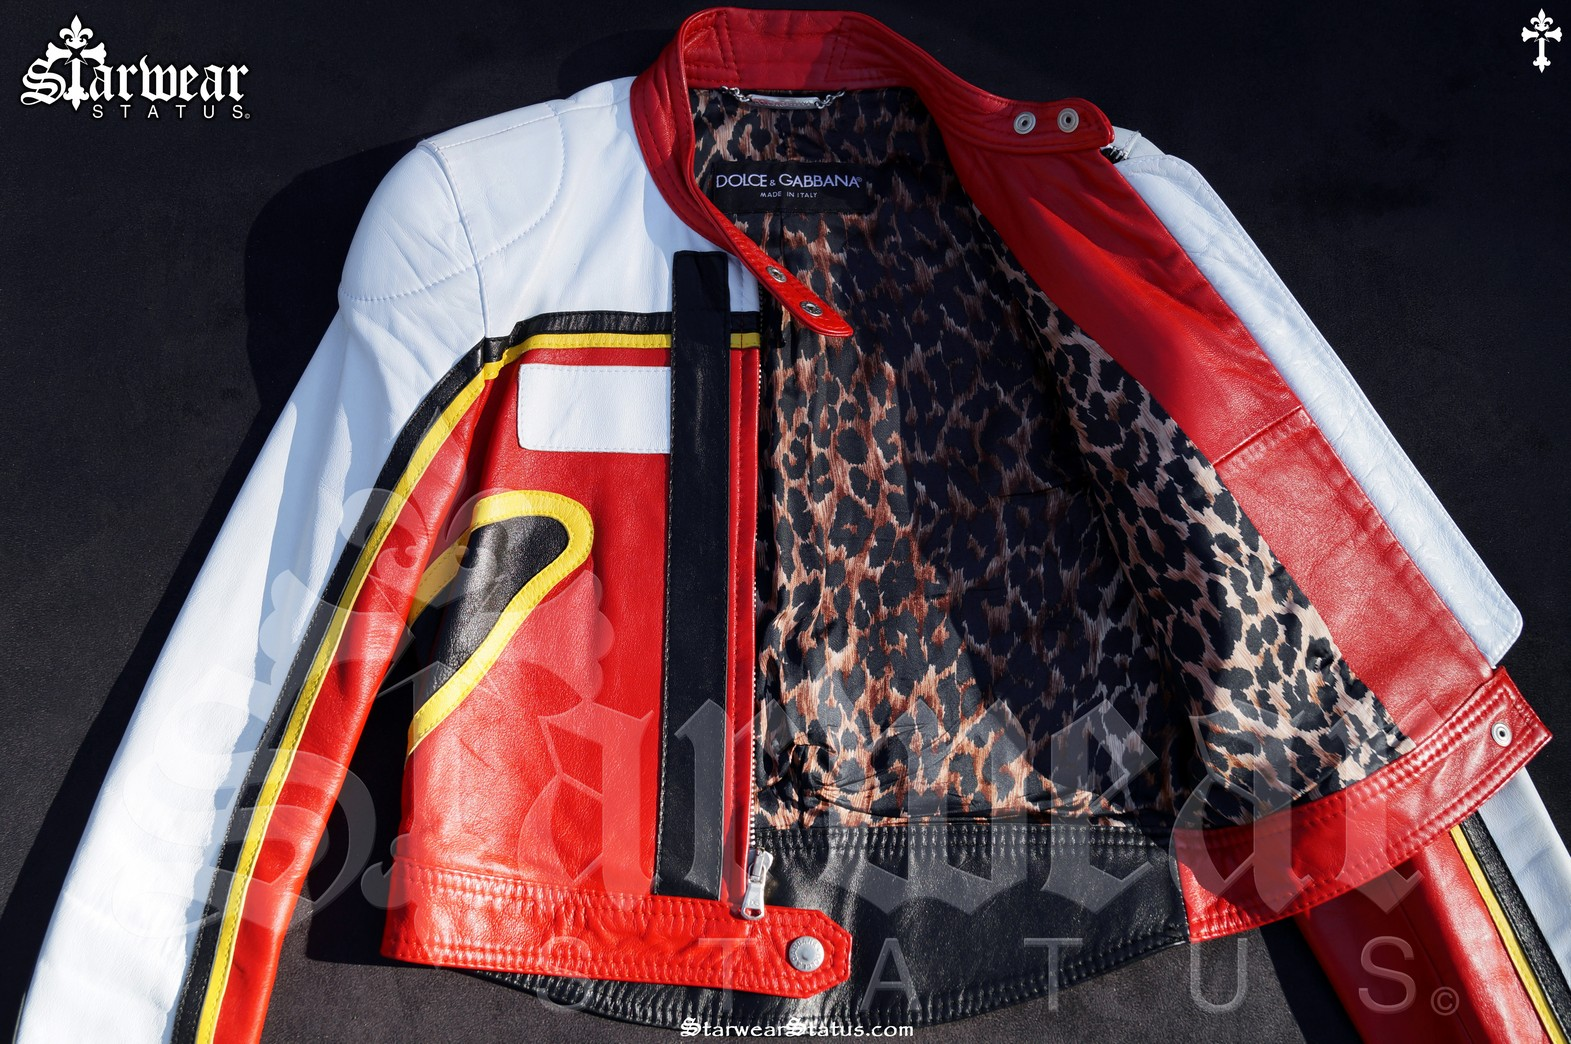 cc1a3c1df Dolce & Gabbana D&G Leather Leopard Print Cafe Racer Motorcycle Biker  Jacket Women's Size 6 XS. (VERY RARE PIECE FROM 2001!)